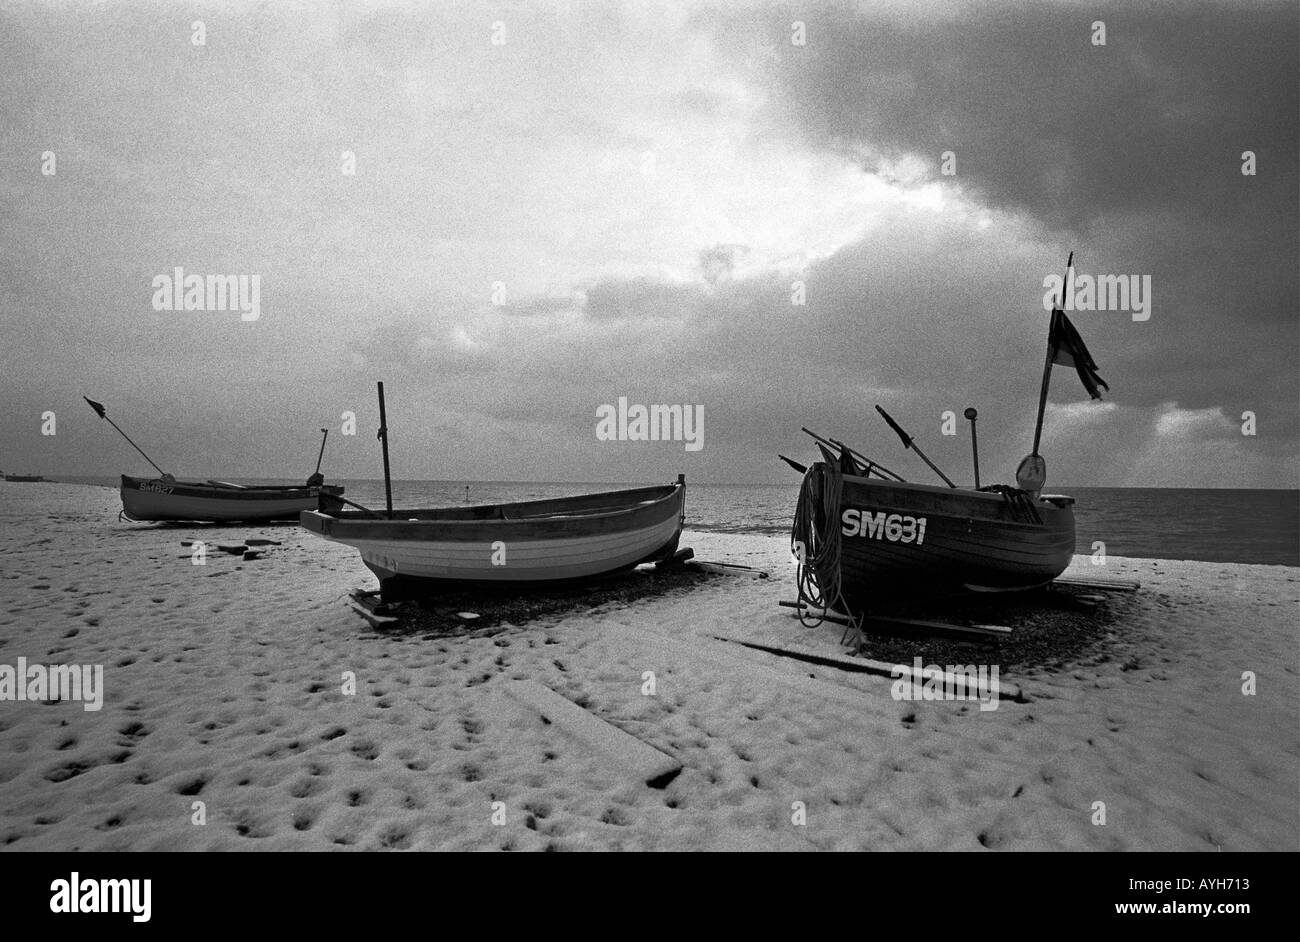 Fishing boats dusted with snow on Brighton beach - Stock Image